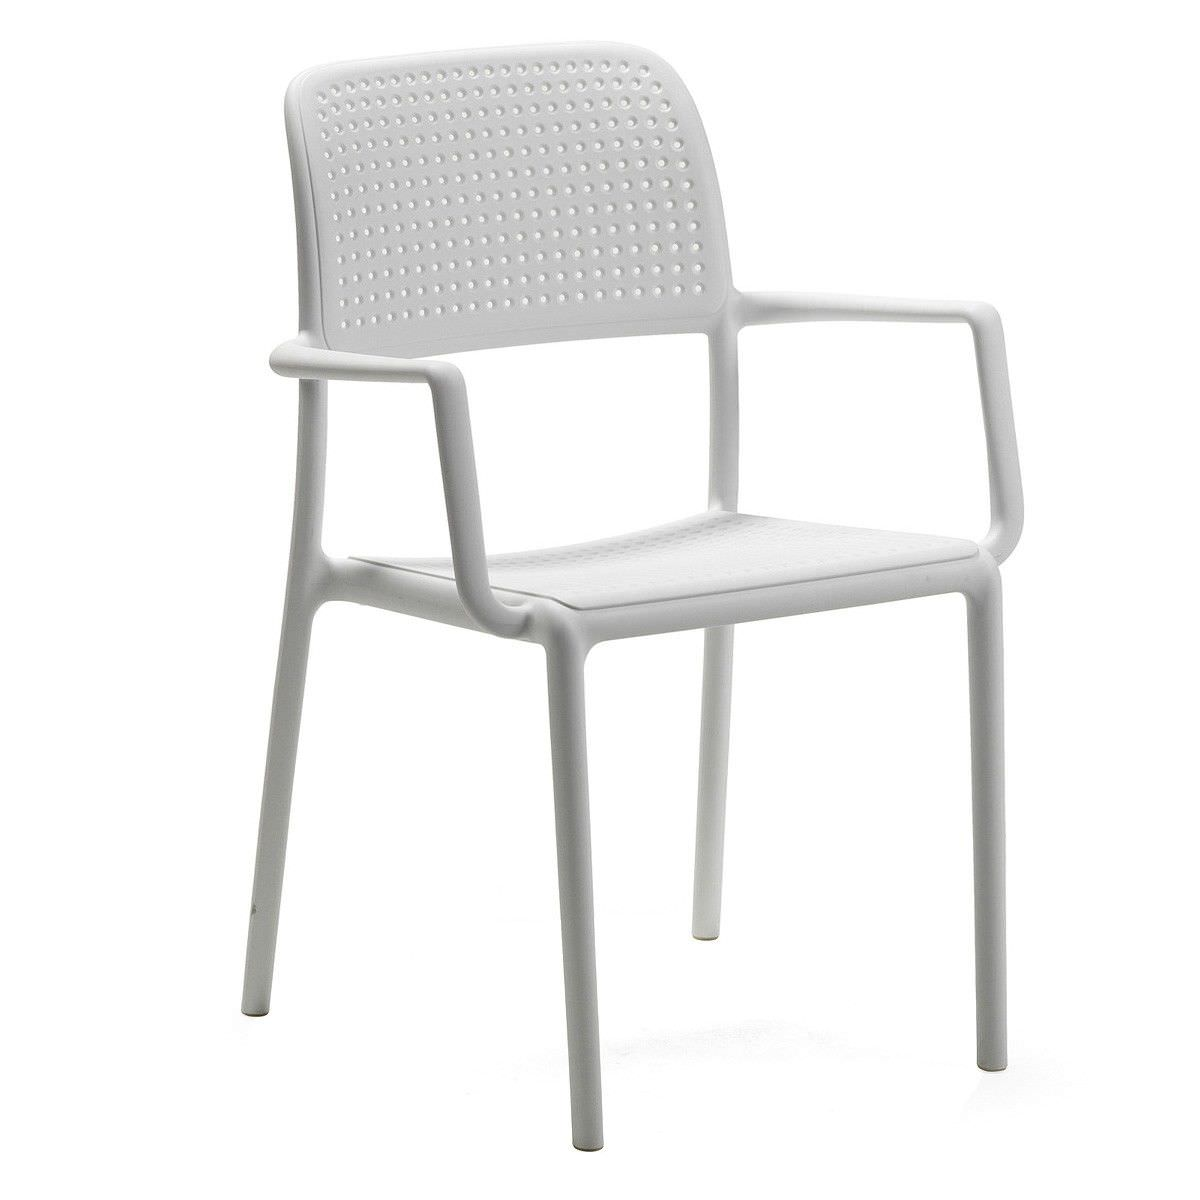 Bora Italian Made Commercial Grade Stackable Indoor/Outdoor Side Armchair - White